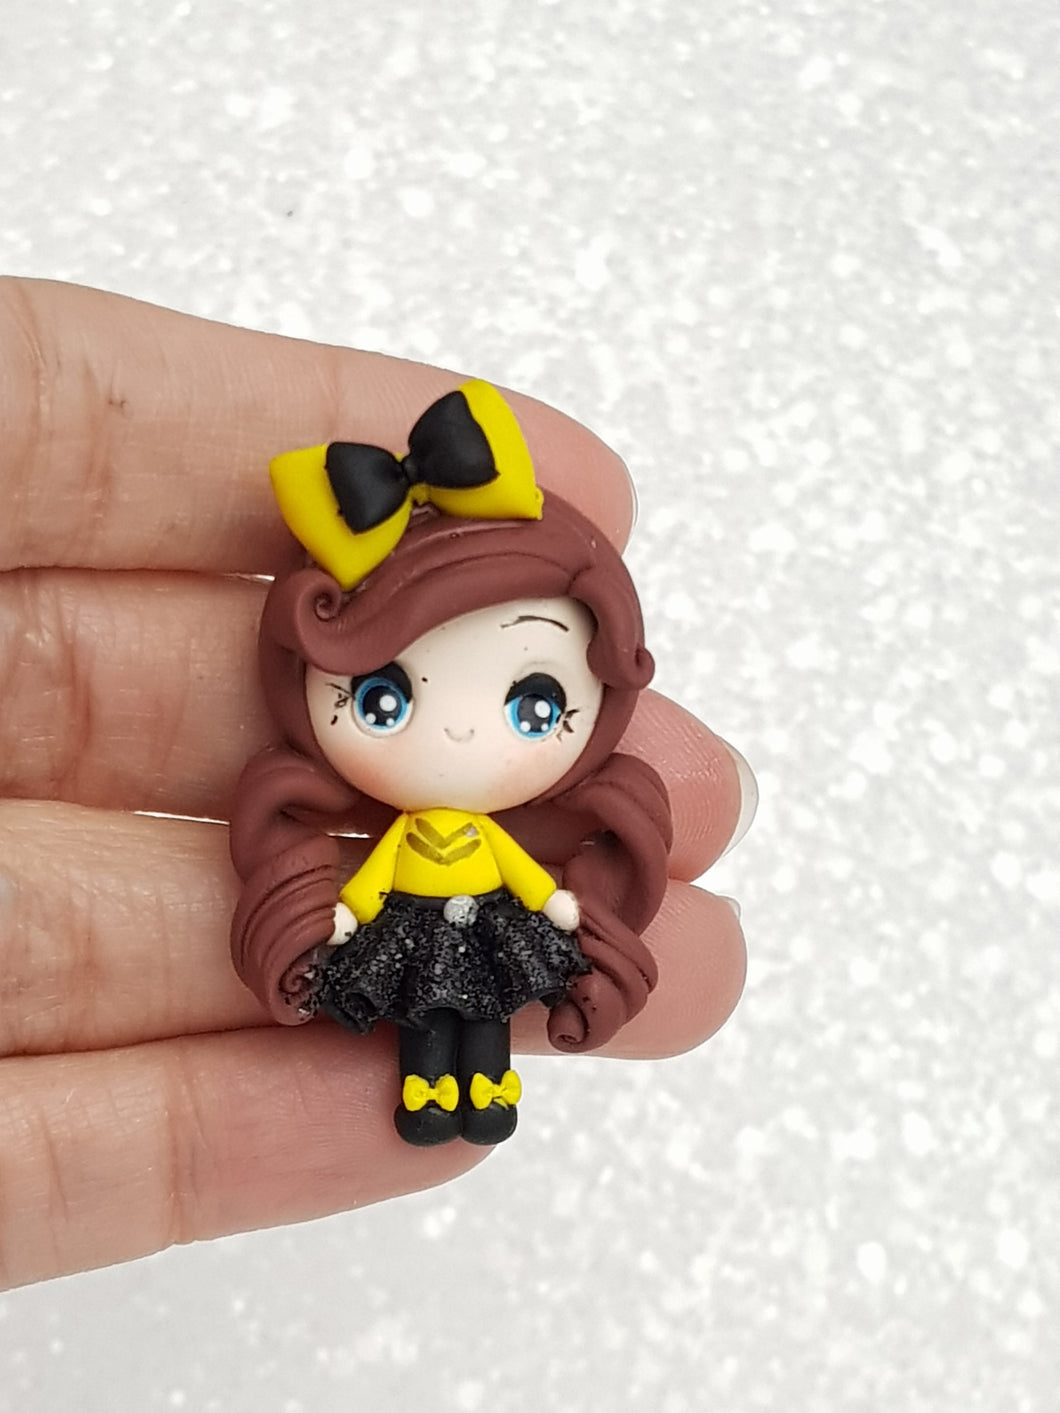 Handmade Clay Charm - New Big Eyes Bee Girl - Crafty Mood